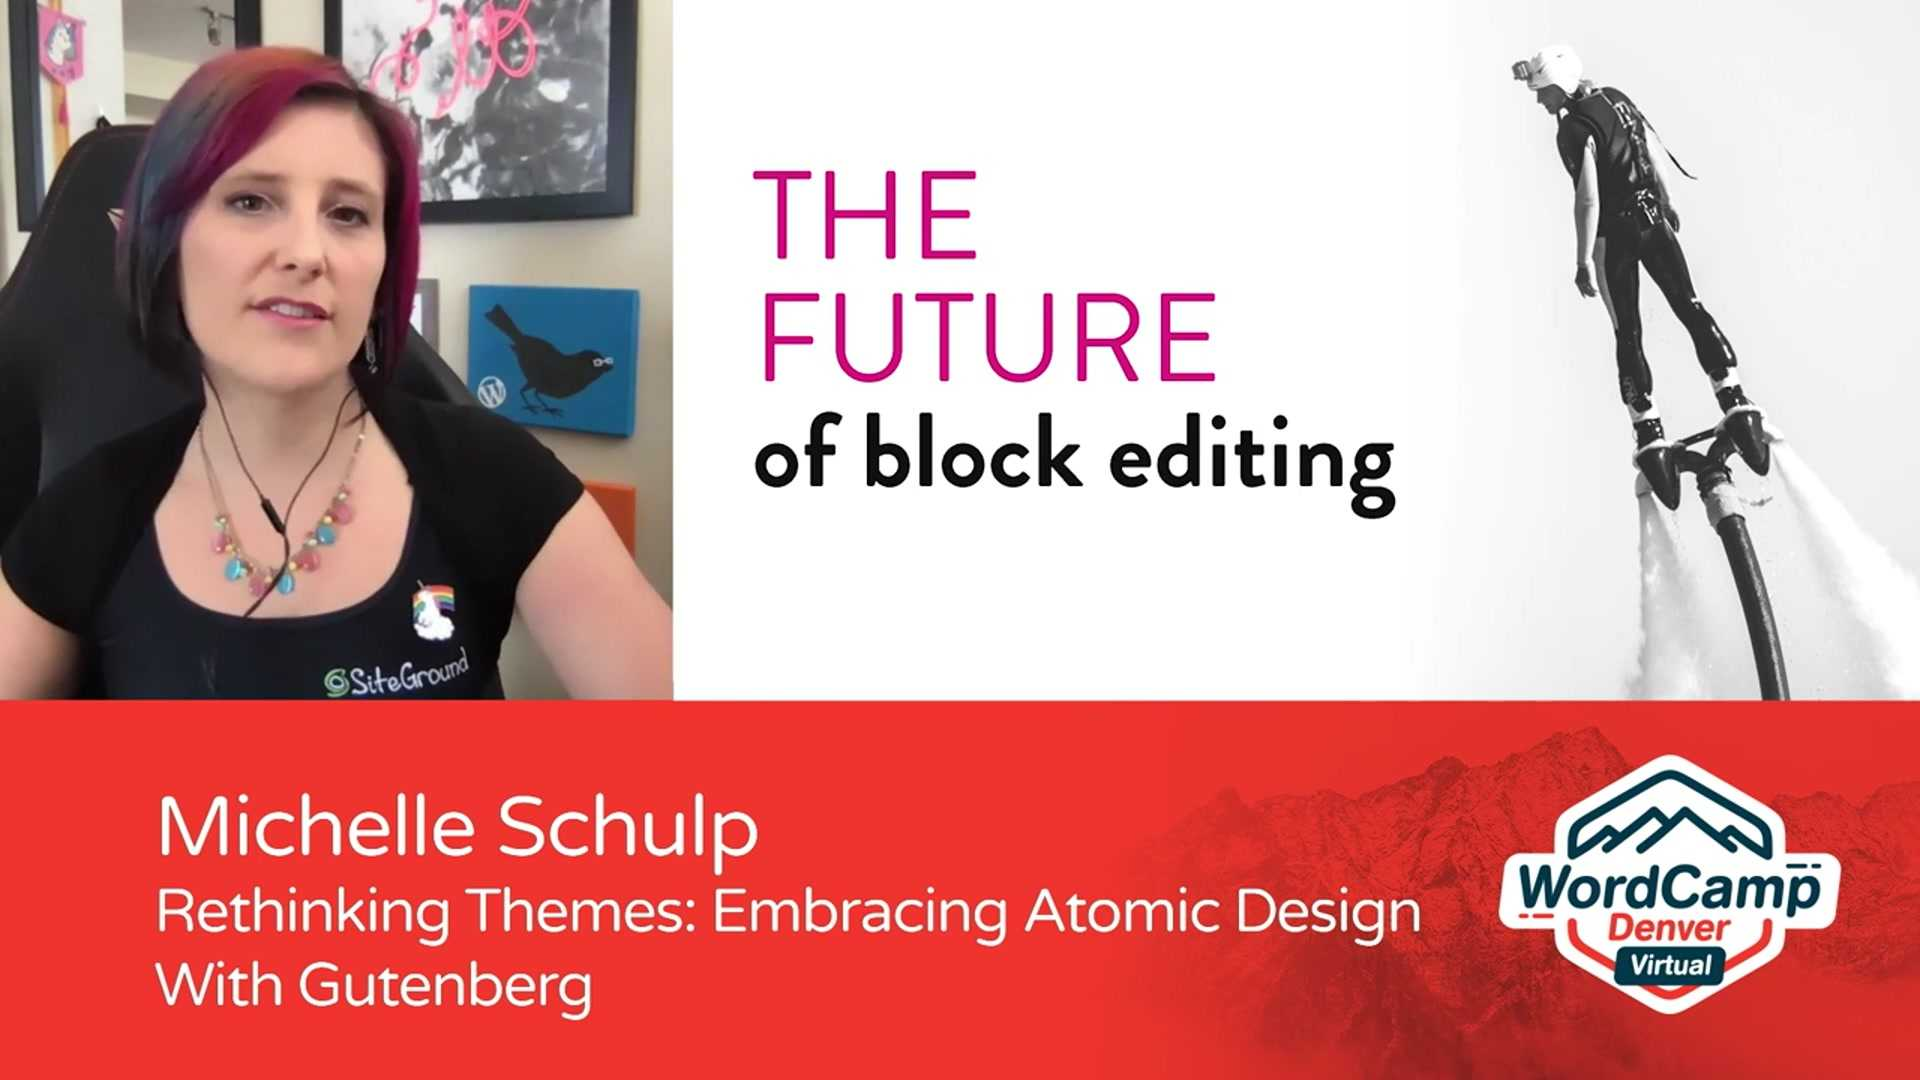 Michelle Schulp: Rethinking Themes – Embracing Atomic Design With Gutenberg